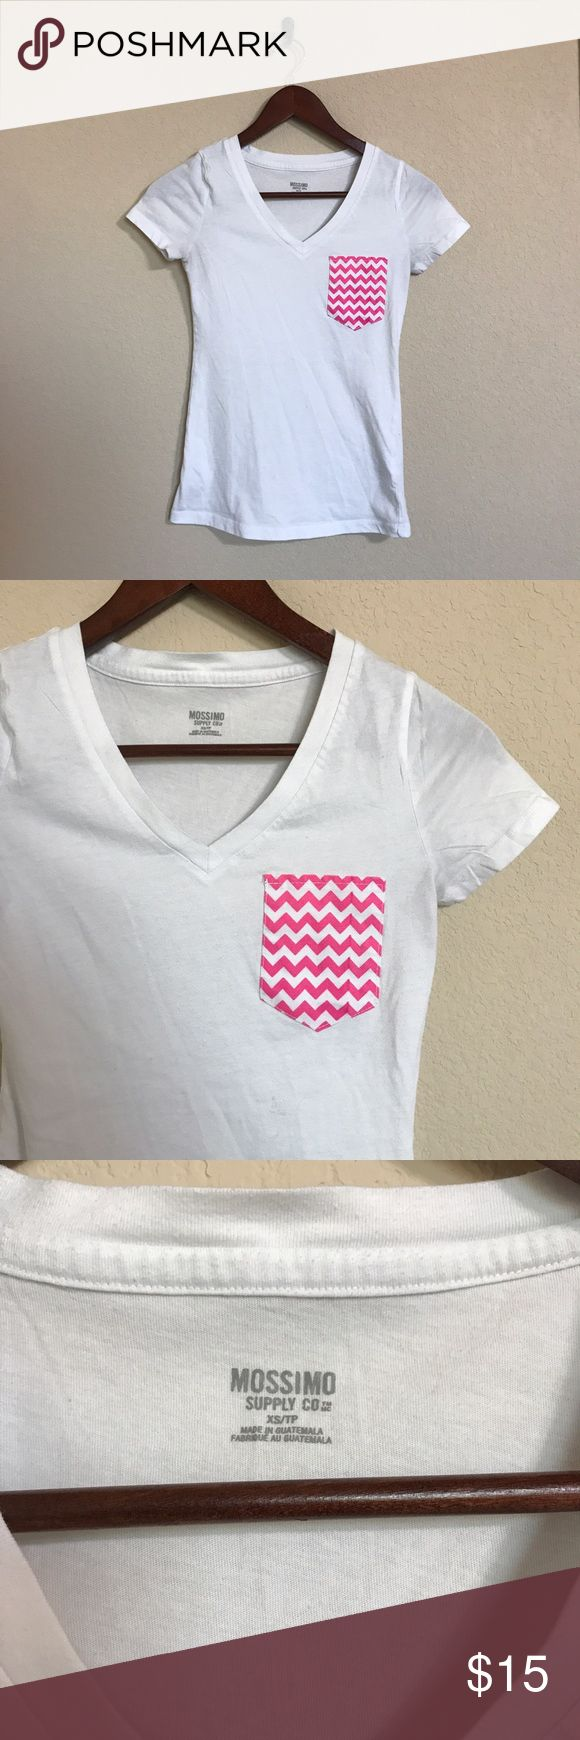 Pink Chevron Pocket Tee This Tee is gently used with an adorable chevron pocket. Size XS from brand Mossimo. Make offers! 💞 Mossimo Supply Co. Tops Tees - Short Sleeve